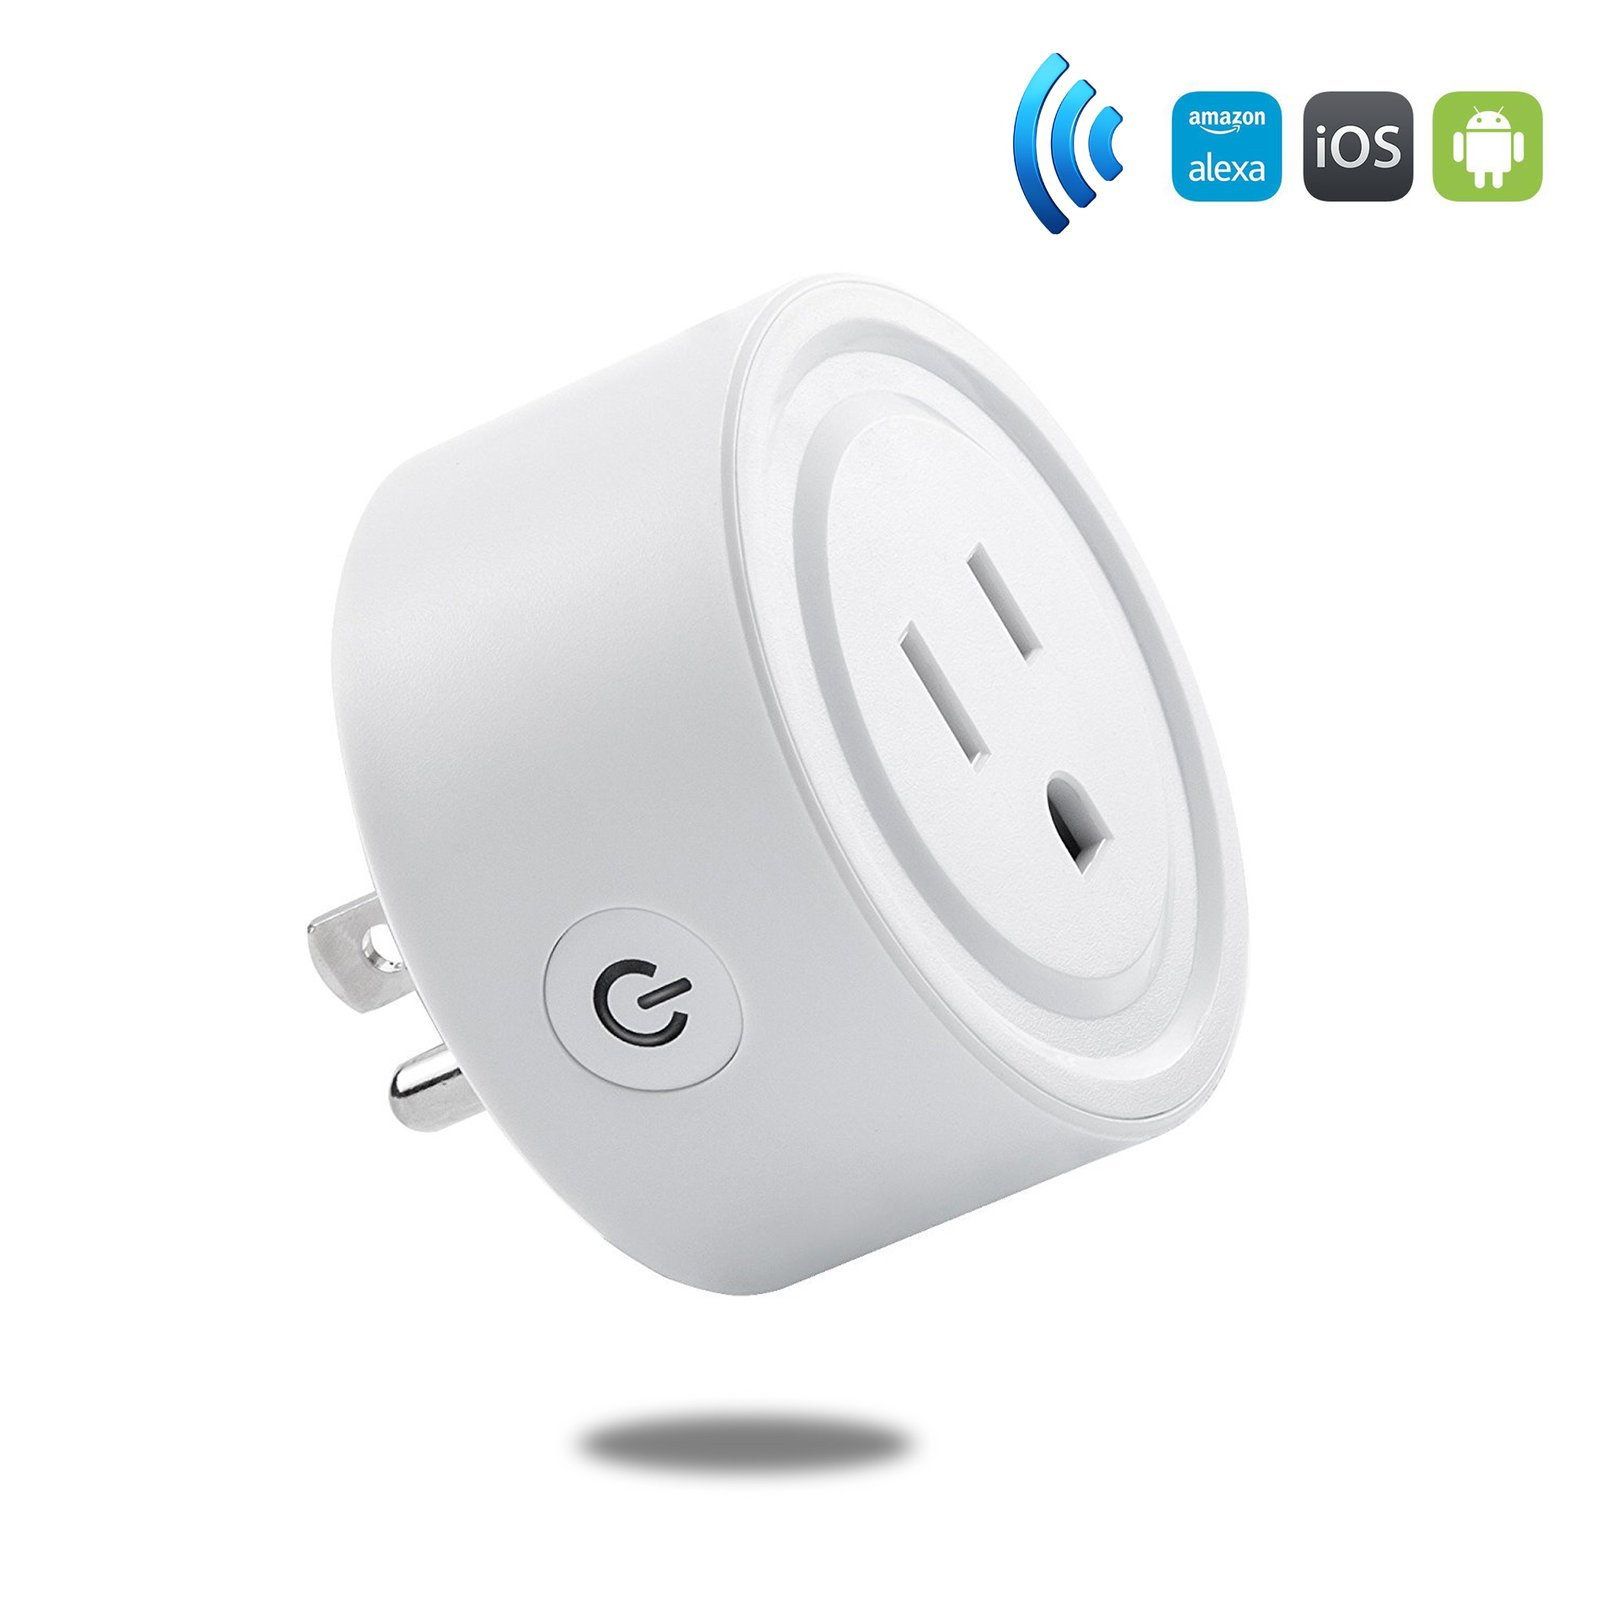 HF-SP1: Wi-Fi Enabled Mini Smart Power Plug/Socket Wireless Outlet Works with Amazon Alexa & Google Home(mini), No Hub Required,